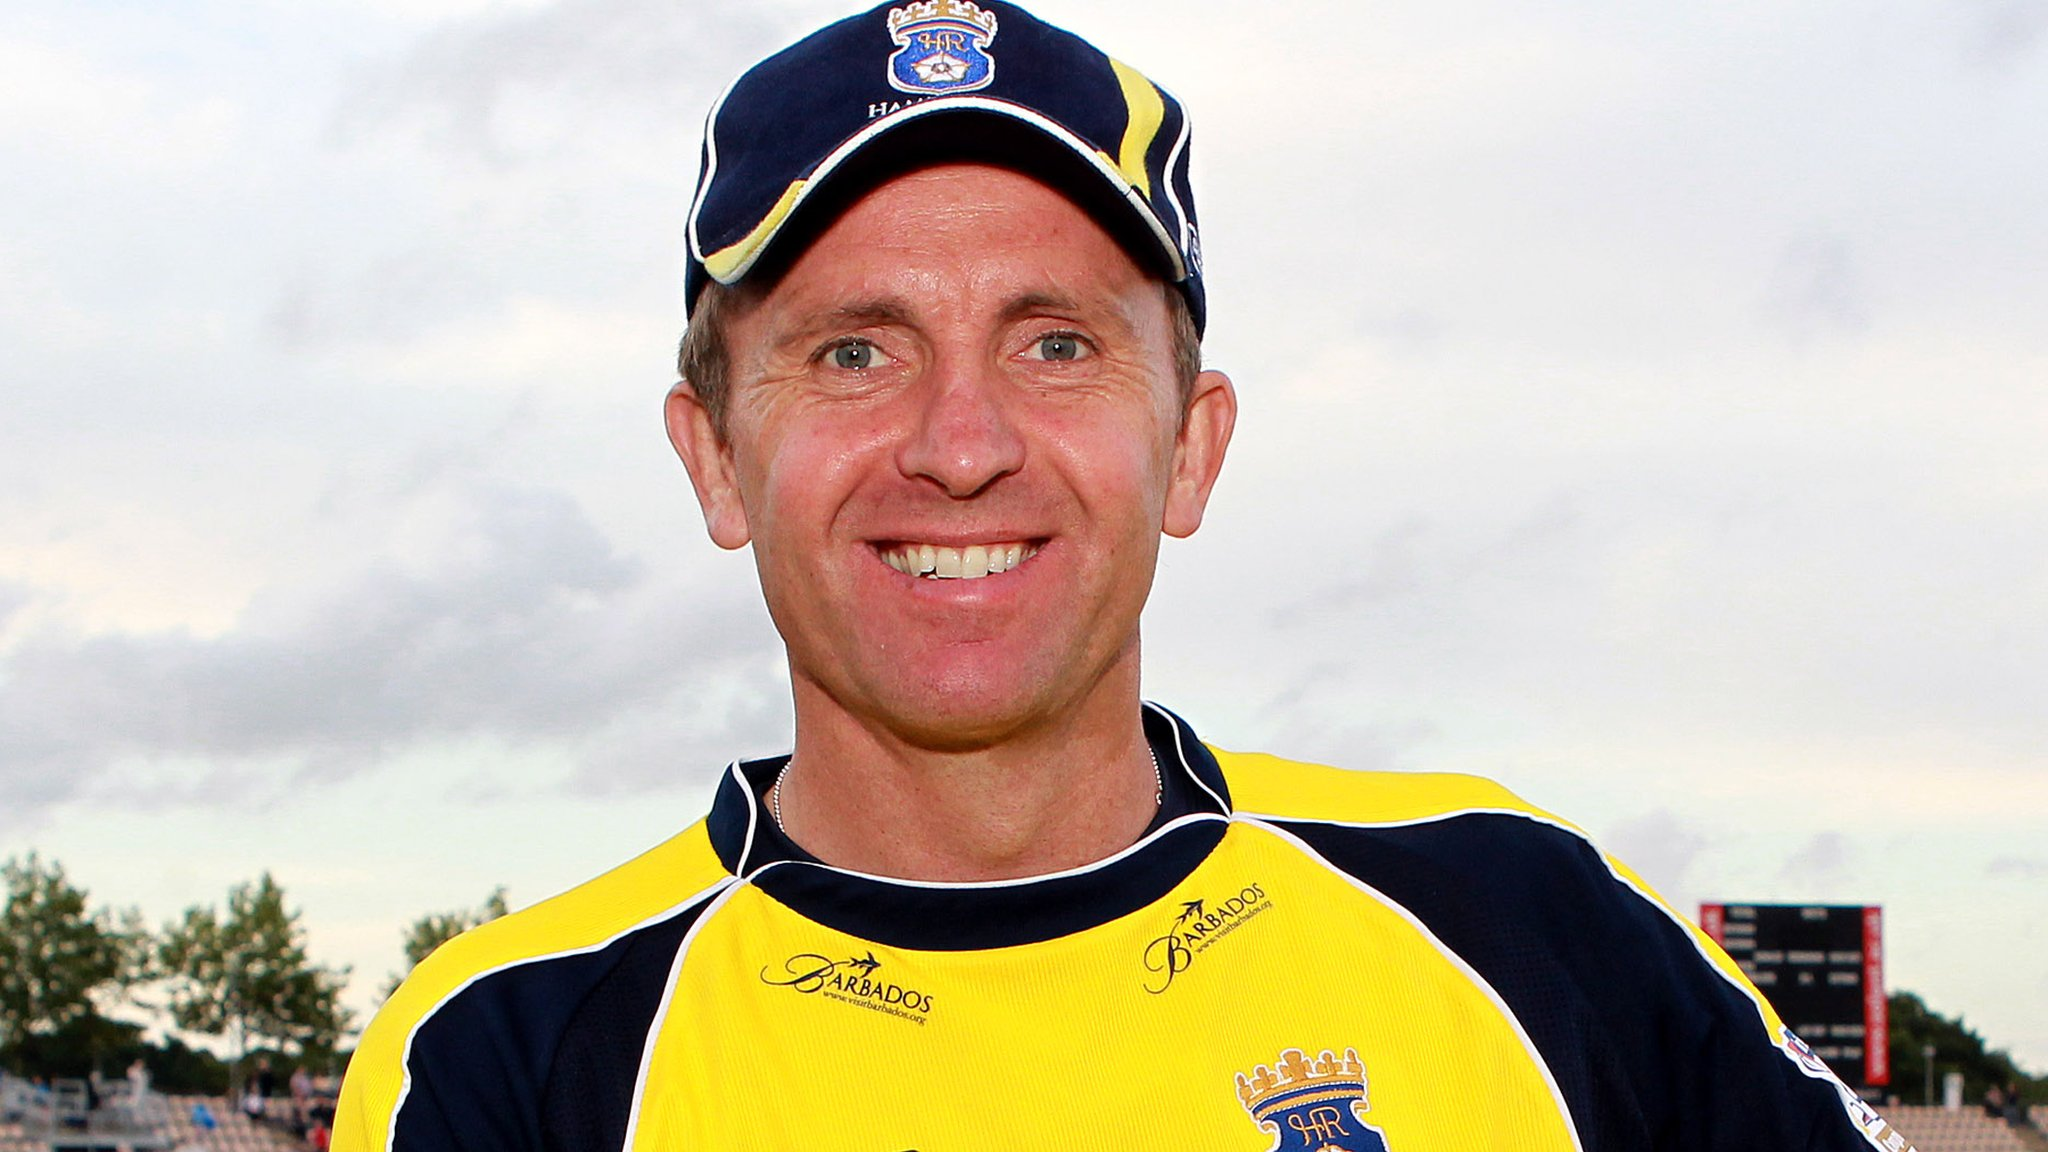 Dominic Cork: Former Derbyshire bowler returns as T20 Blast head coach